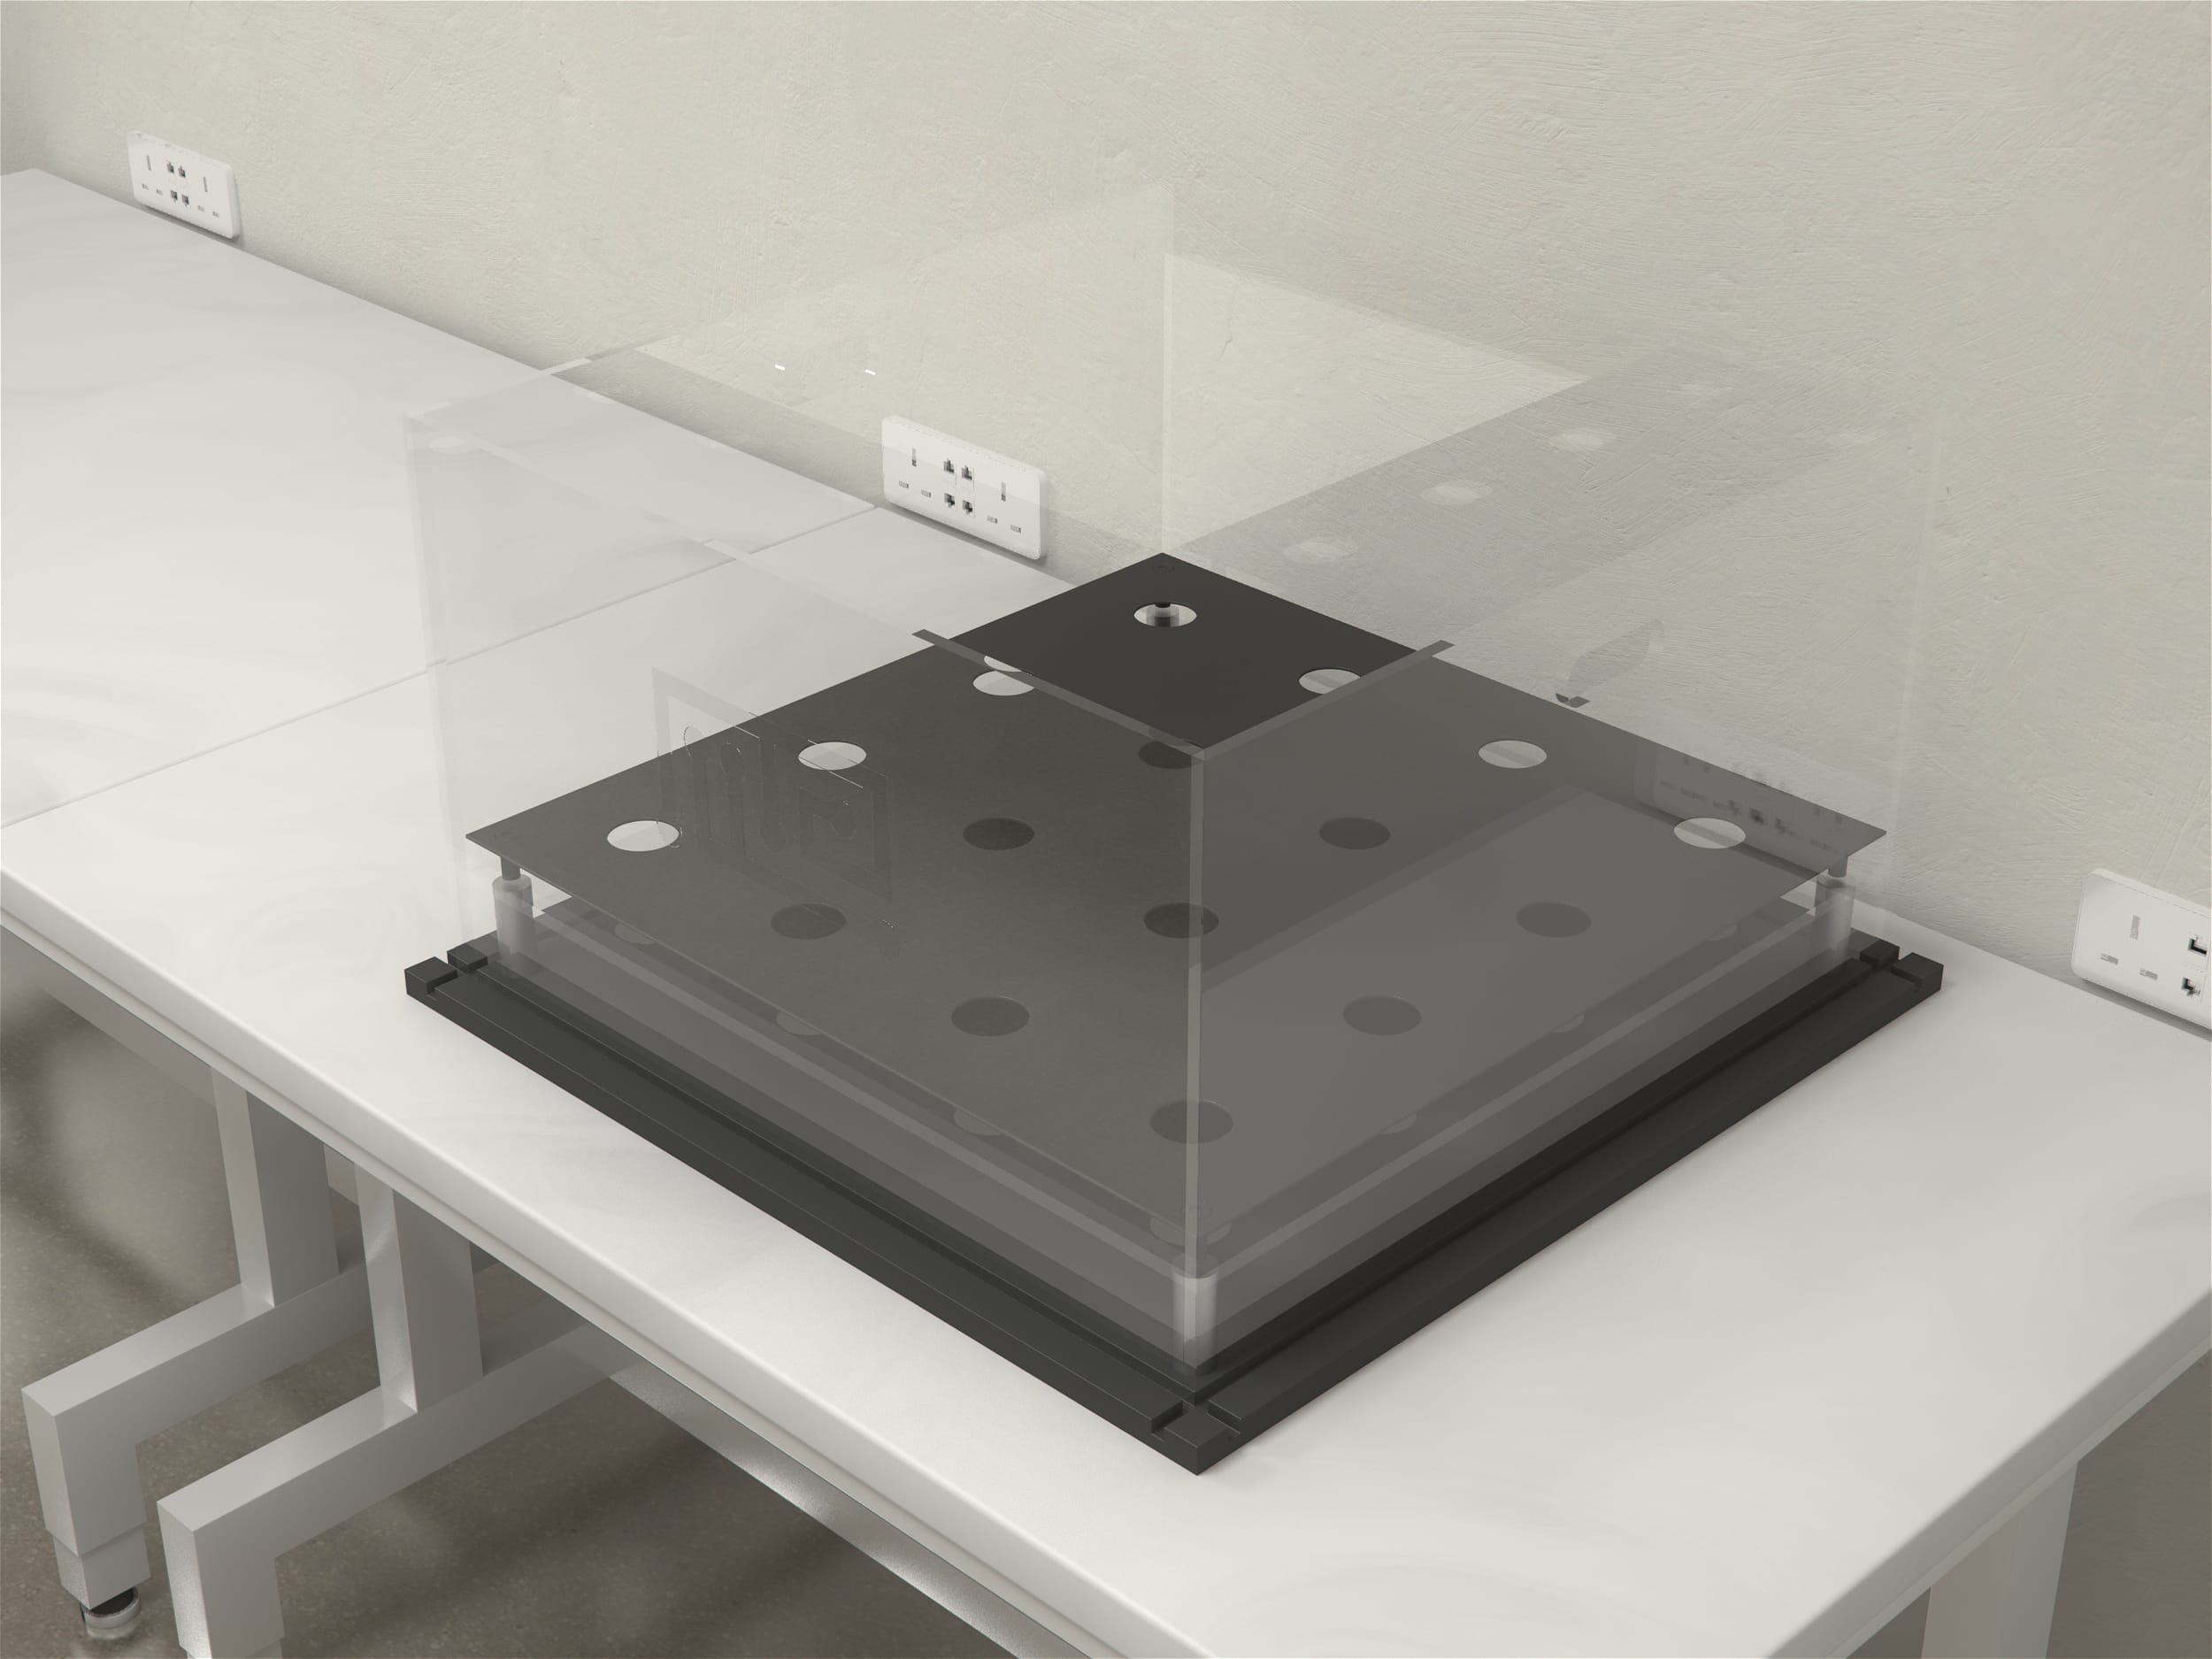 Hole Board is a behavioral test used in neuroscience to assess multiple aspects of unconditioned behavior